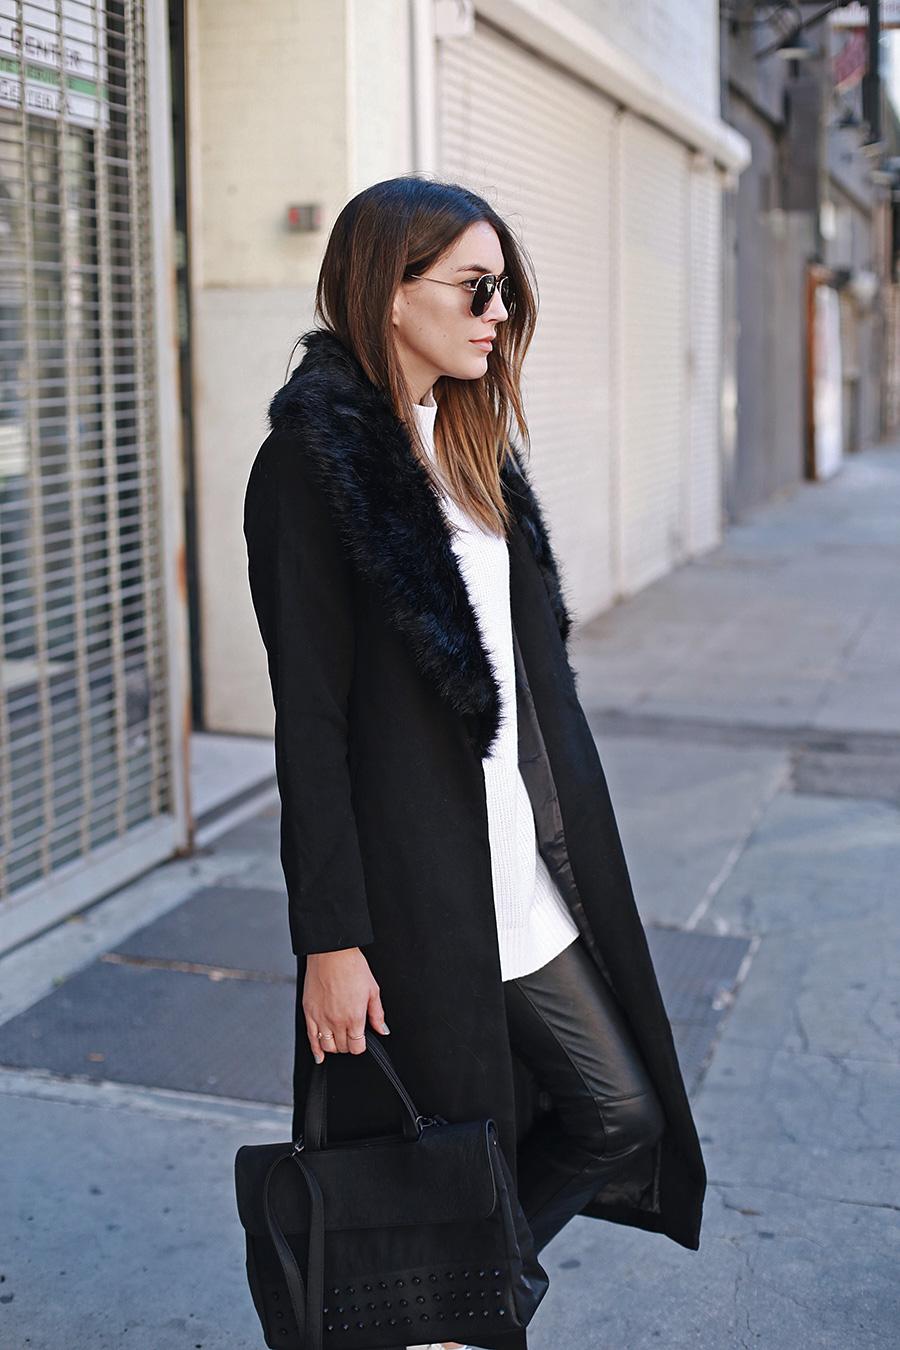 How To Wear A Faux Fur Stole Or Faux Fur Collar Coat In Winter